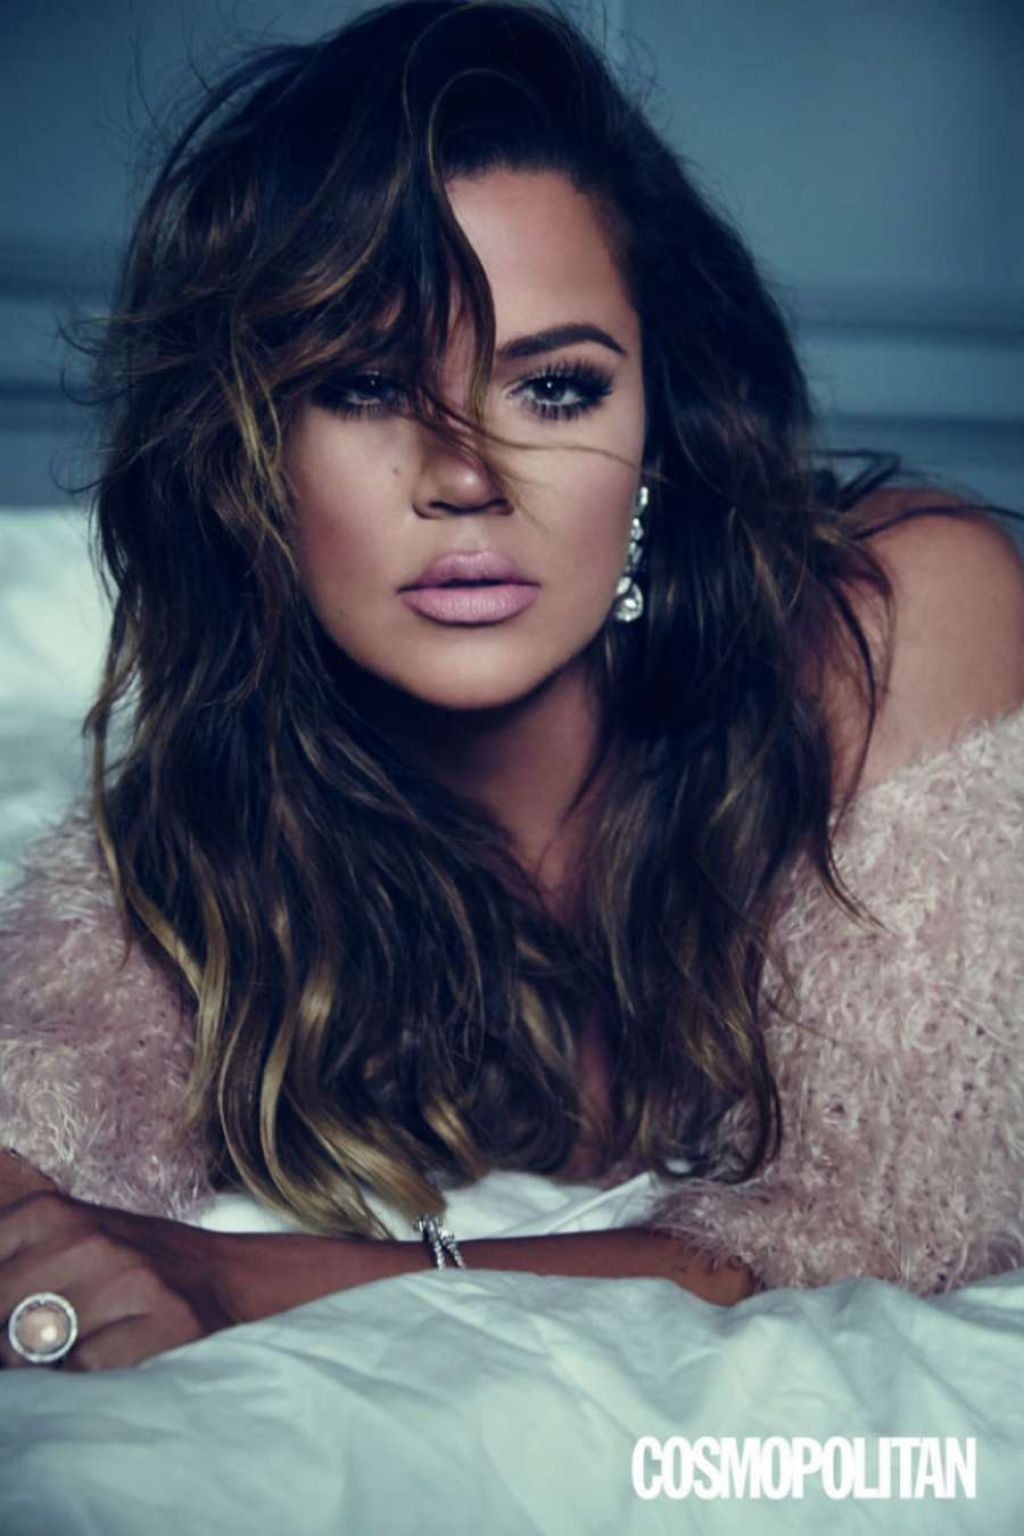 khloe-kardashian-cosmopolitan-magazine-uk-february-2015-issue_1